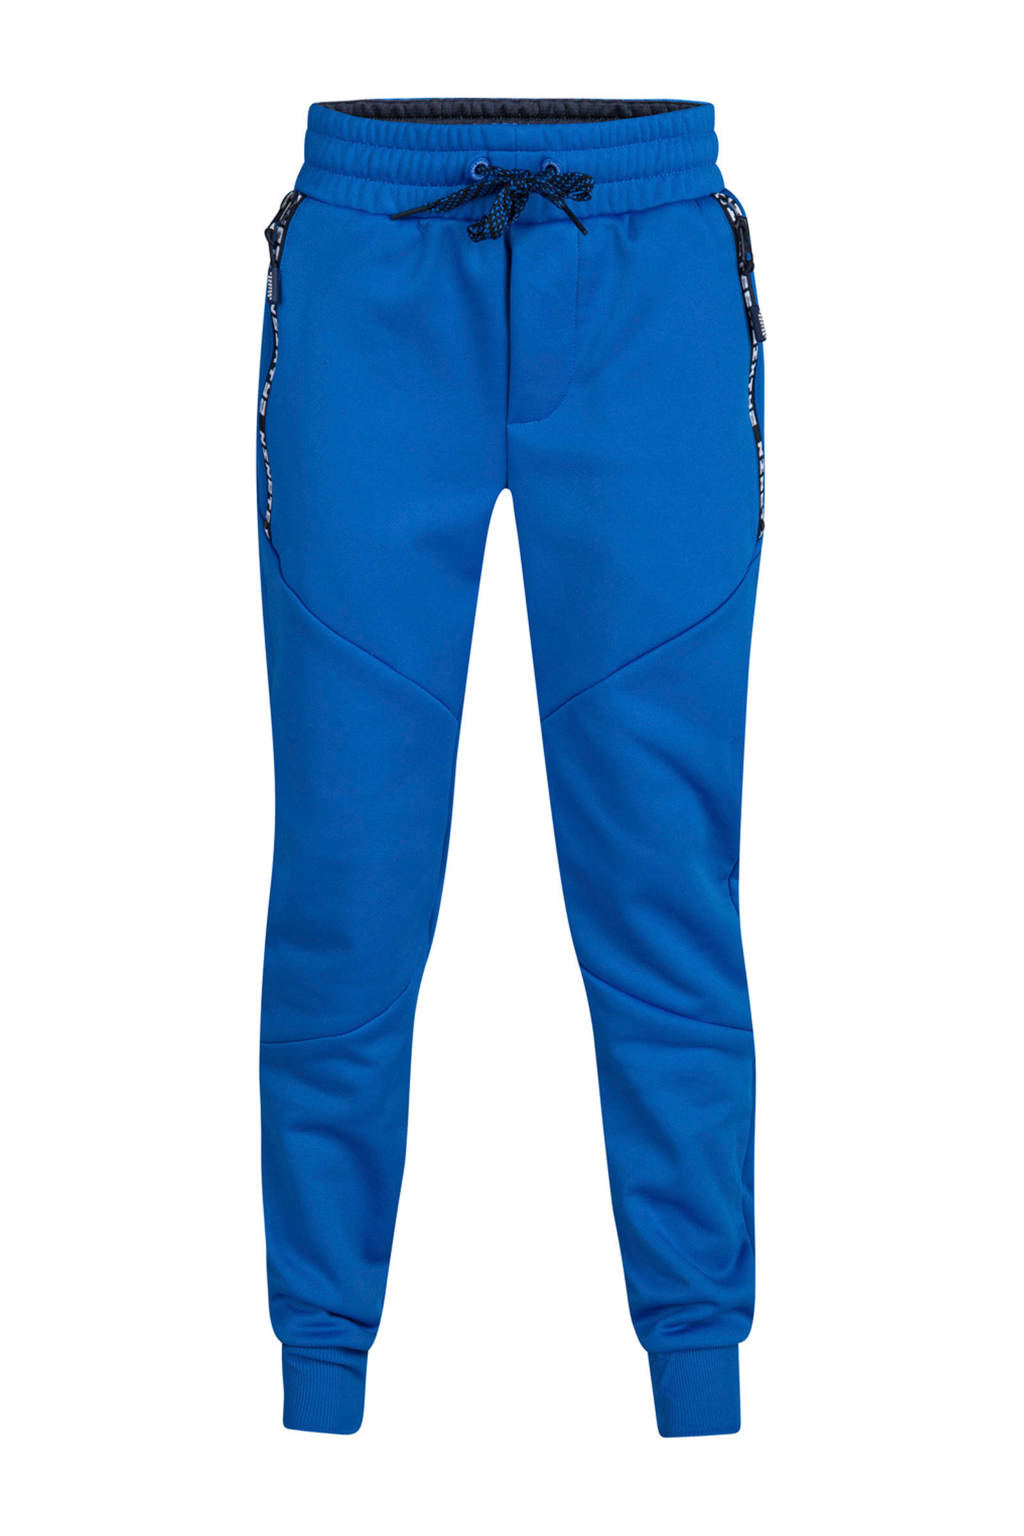 WE Fashion   joggingbroek blauw, Blauw